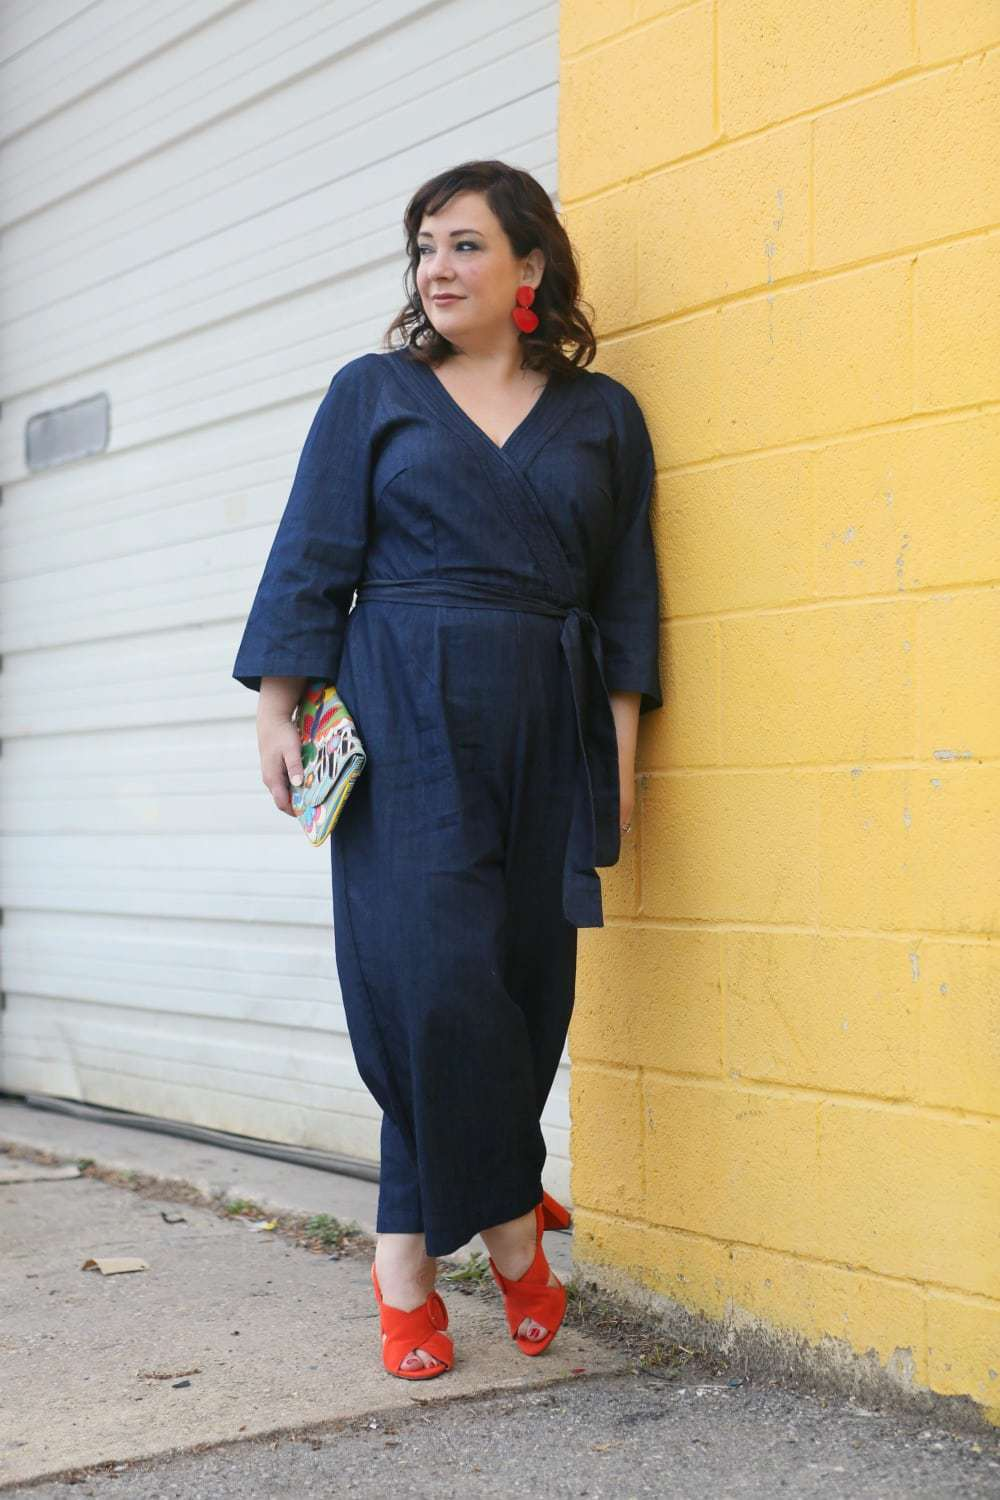 Wardrobe Oxygen in a plus size denim jumpsuit from ELOQUII with orange sandals and red lucite statement earrings - ELOQUII Denim Jumpsuit styled by popular Washington DC petite fashion blogger, Wardrobe Oxygen